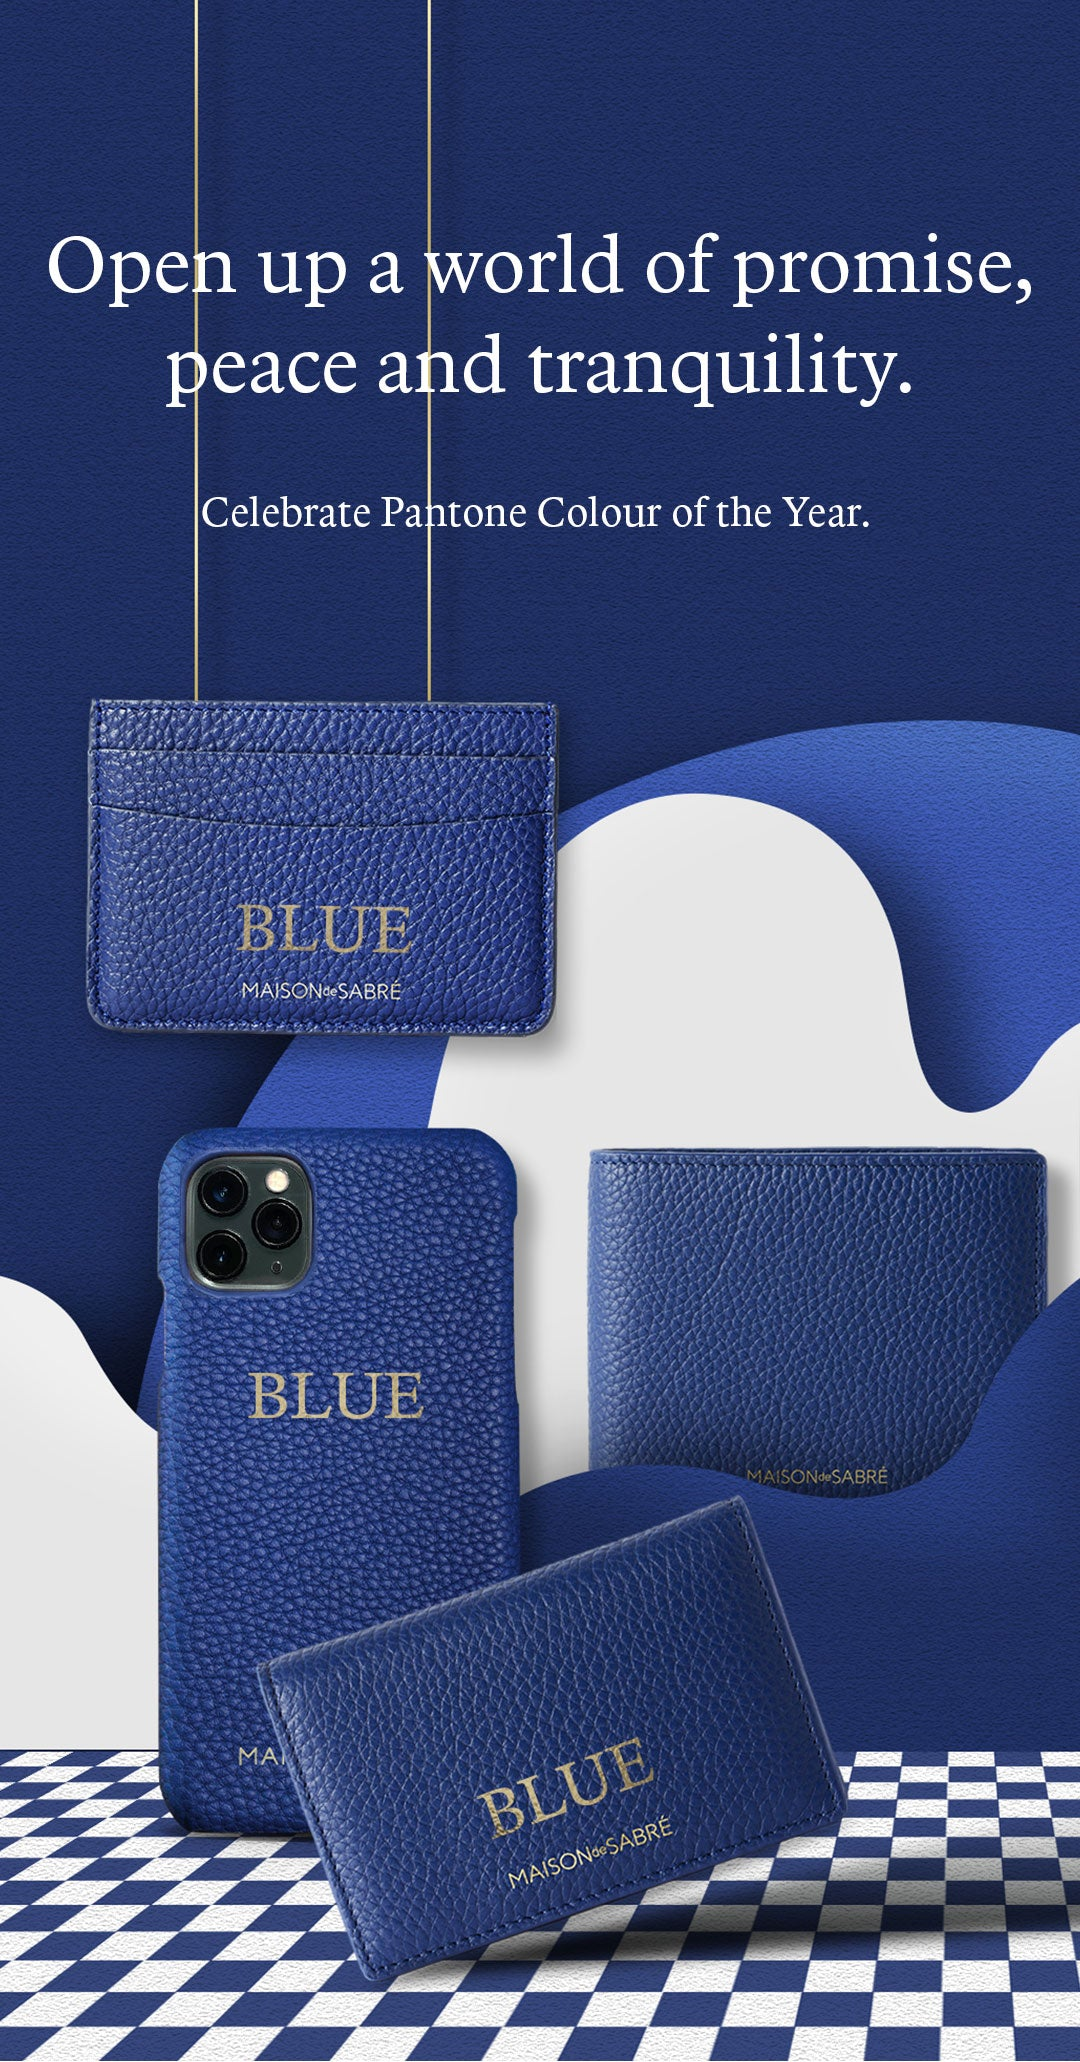 Celebrate the colour of the year